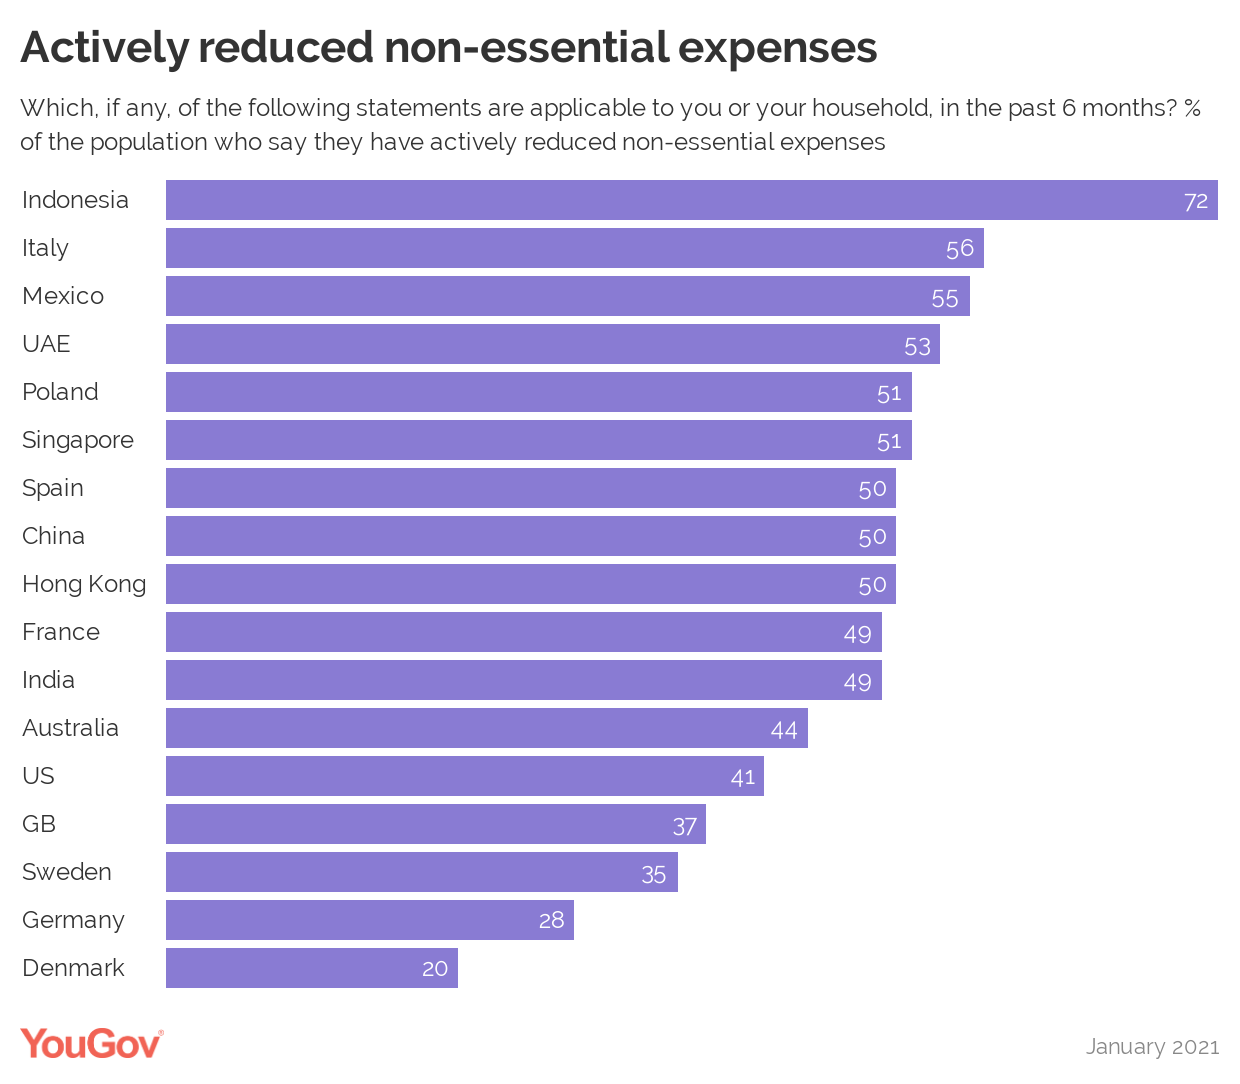 Actively reduced non-essential expenses